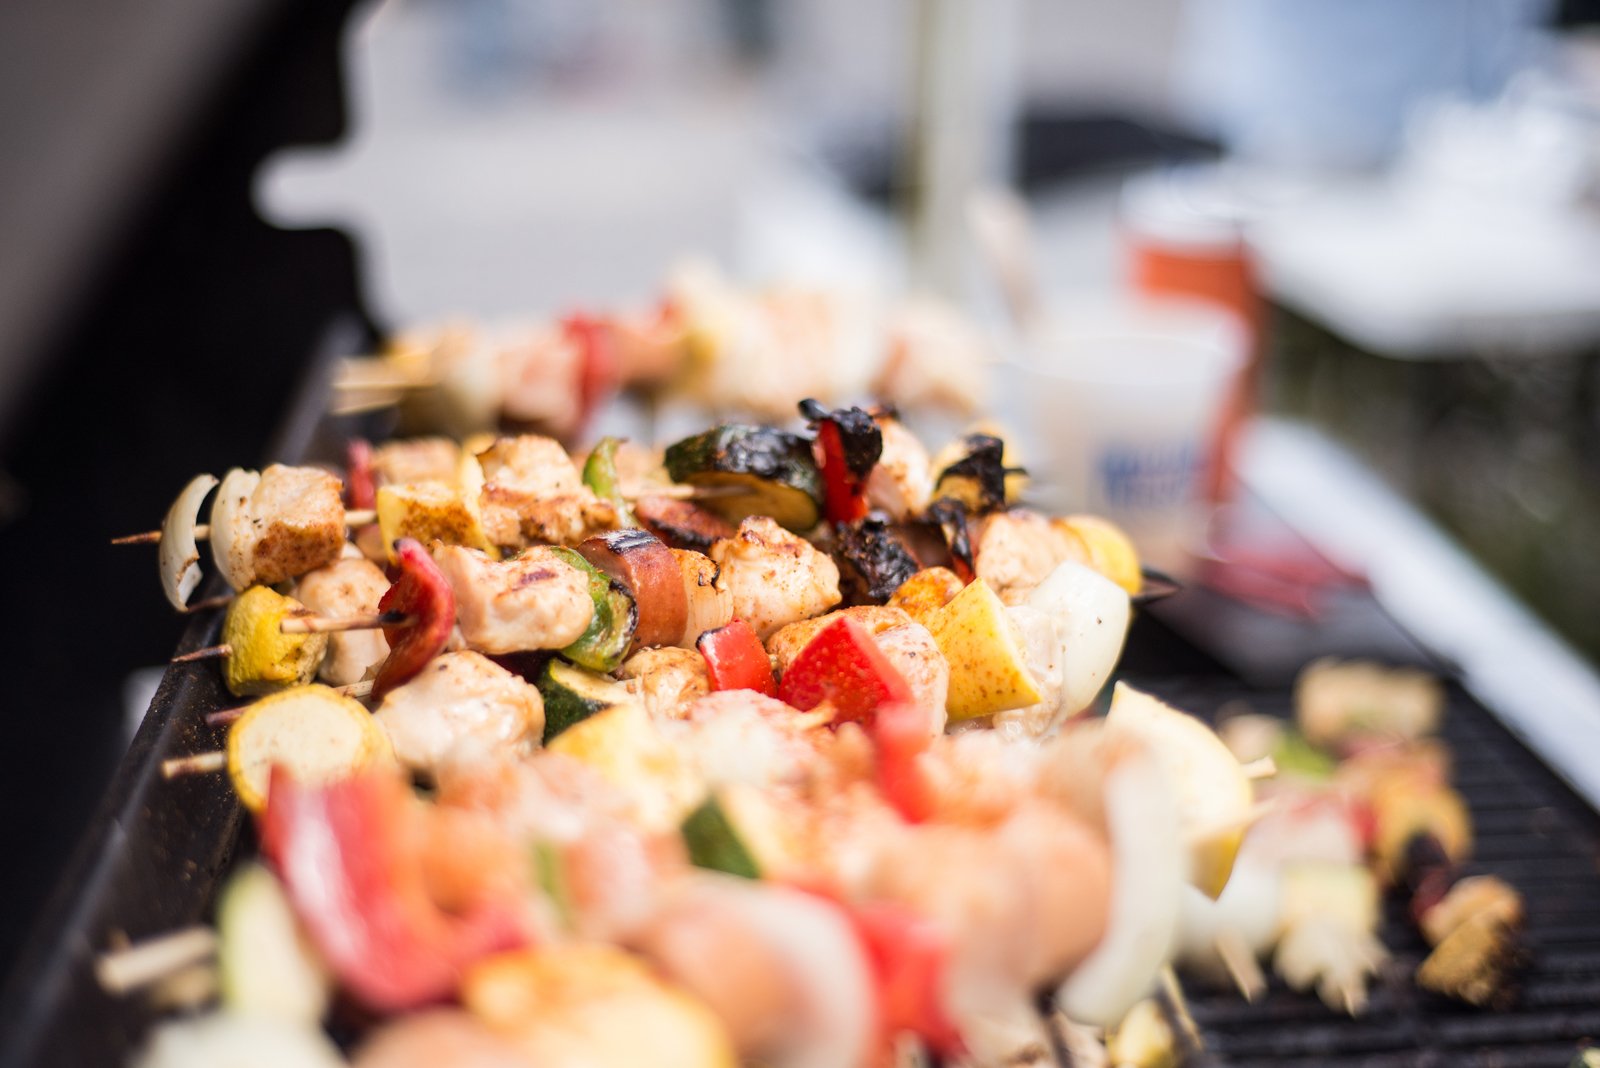 Food & Drinks -        We serve Fried Shrimp plates, Frogmore Stew, Chicken KebobS, Shrimp Kebobs, Barbeque Sandwiches, Hot Dogs, Desserts and so much more...